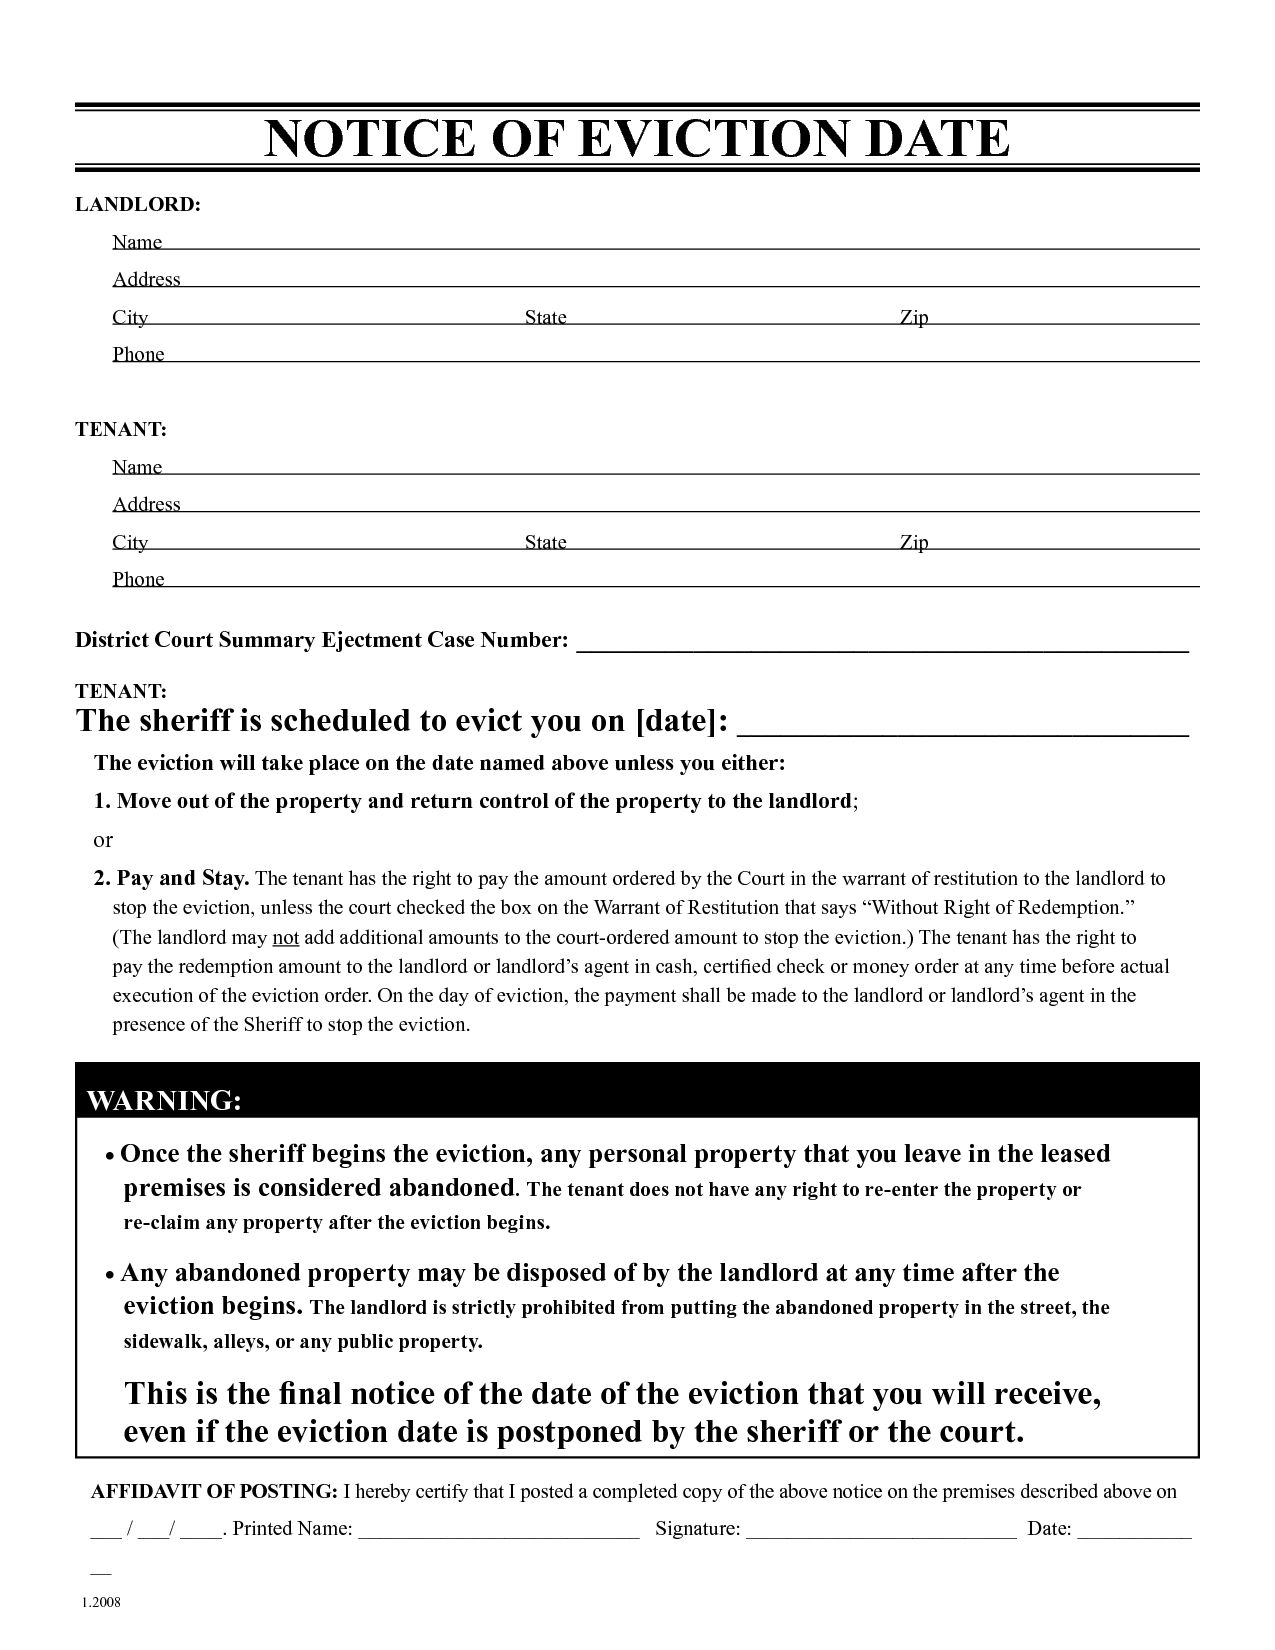 Free Eviction Notice Template | Printable Eviction Notice | Leaave - Free Printable Eviction Notice